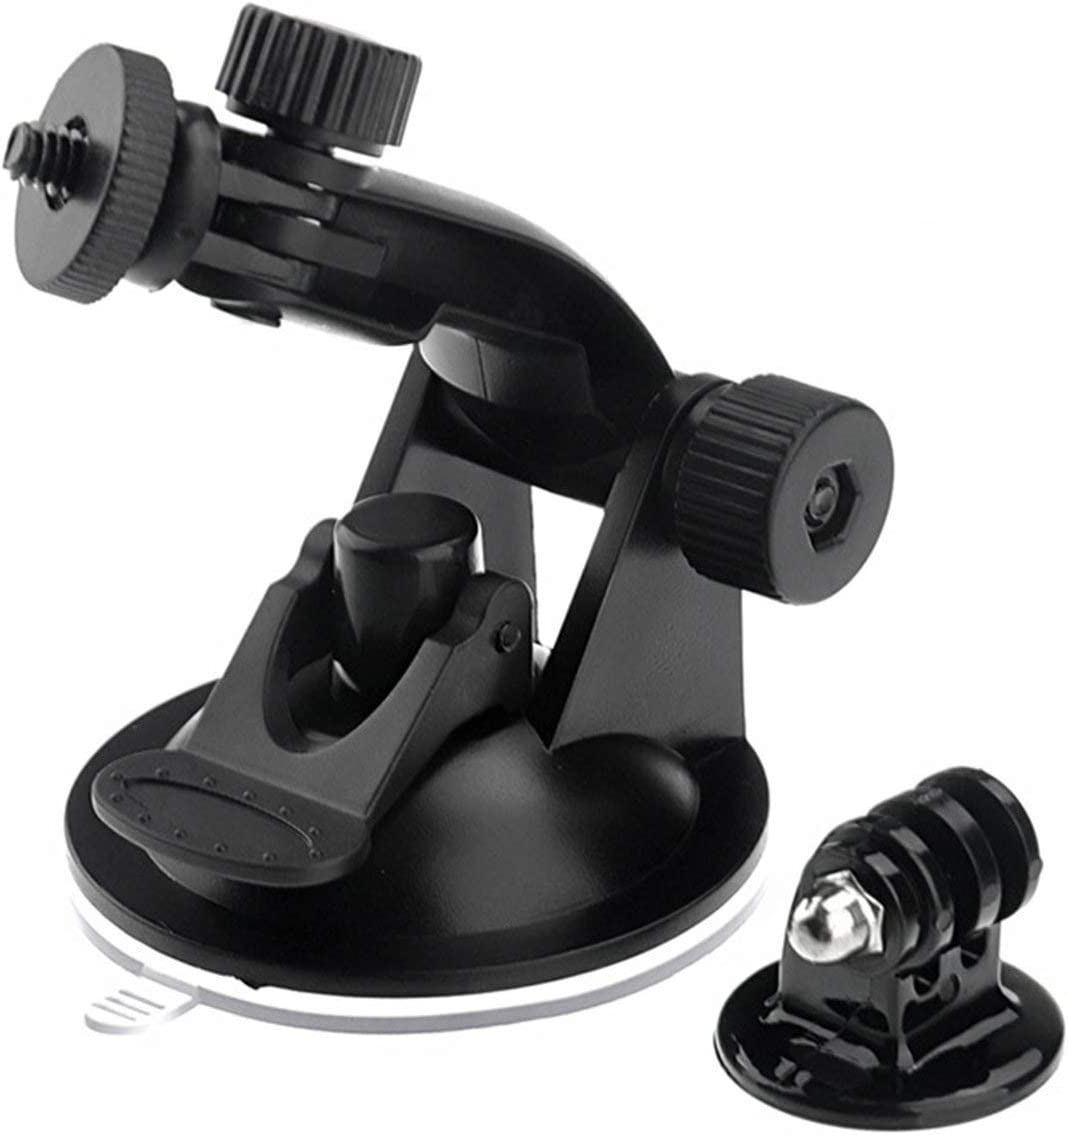 Liobaba Professional Car Suction Cup Adapter Window Glass Tripod Diameter Base Mount Camera Sports Accessories